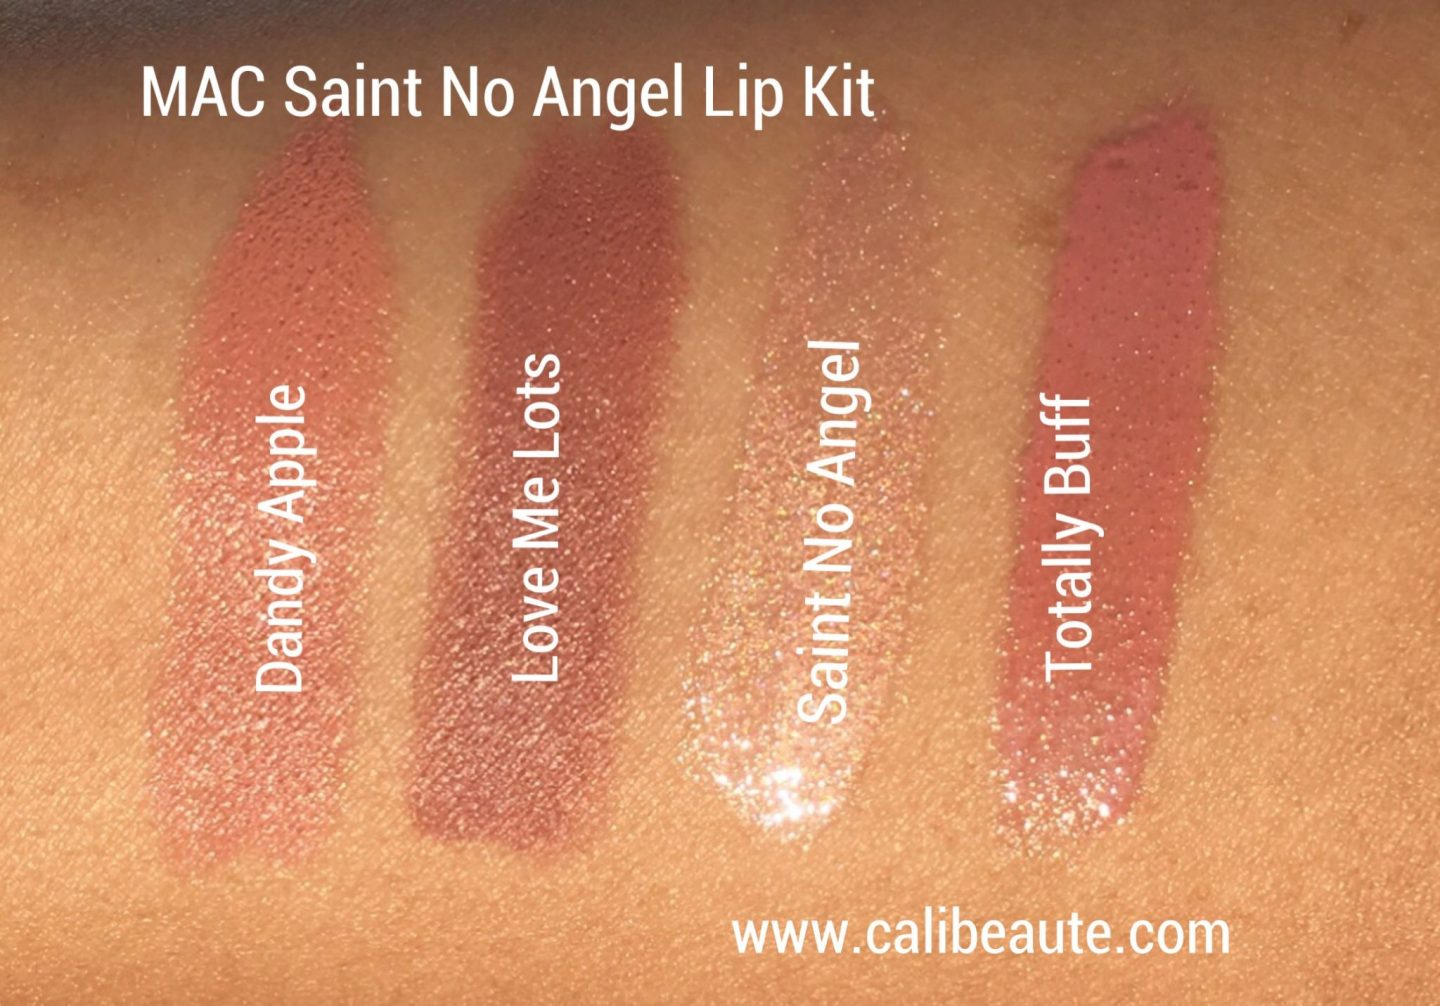 MAC Saint No Angel Lip Kit Swatches |www.calibeaute.com